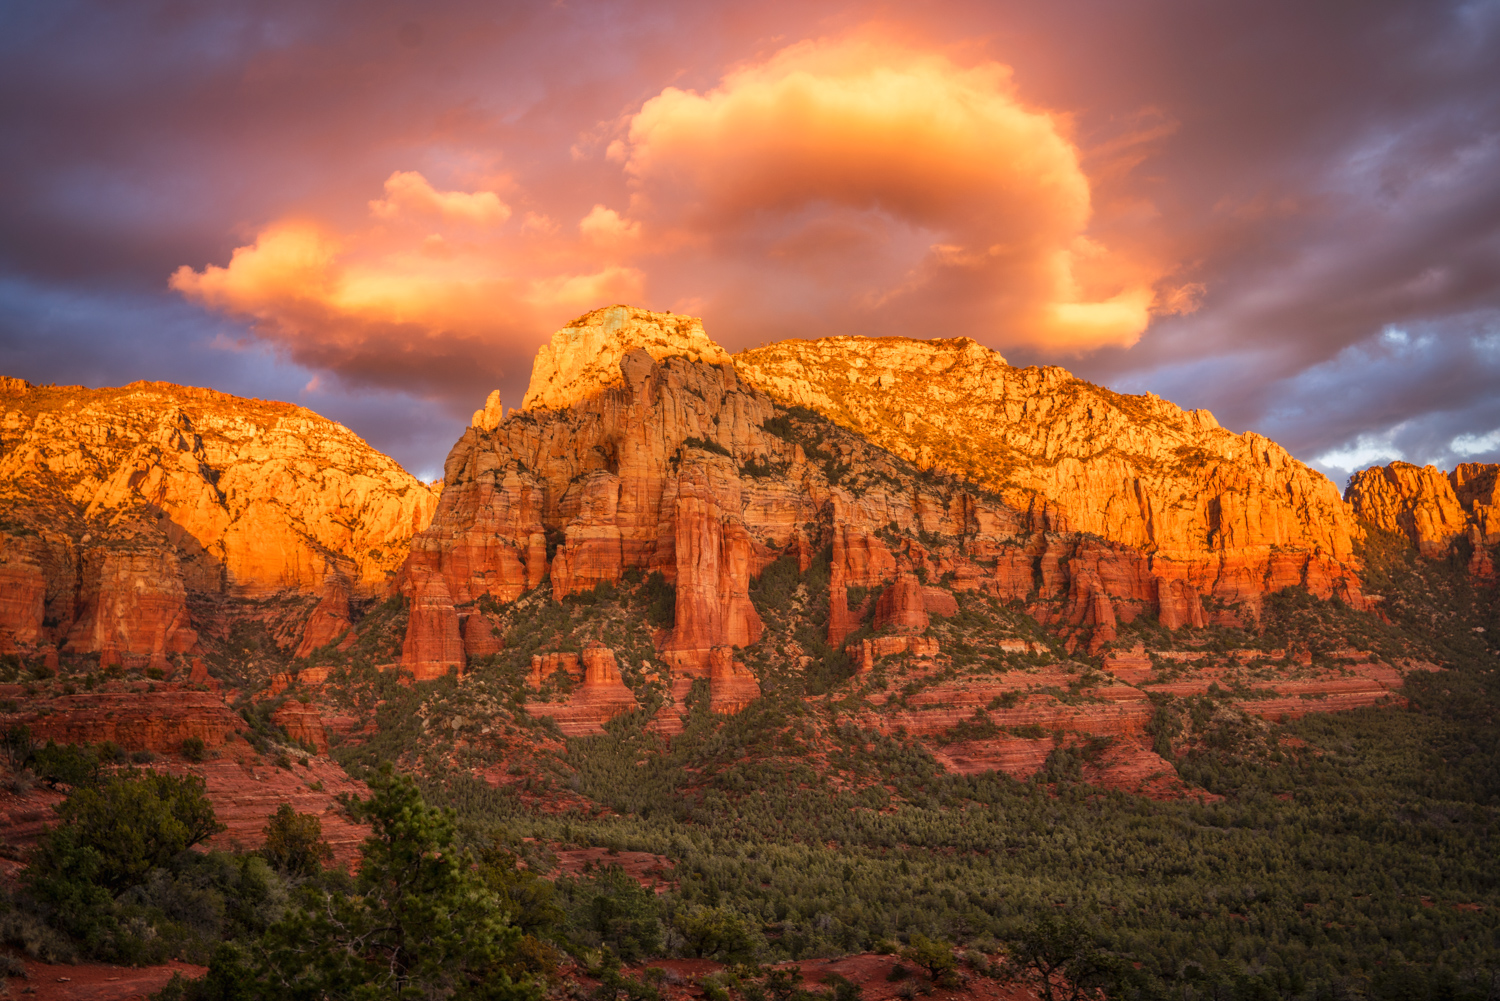 Sunset at Brins Mesa